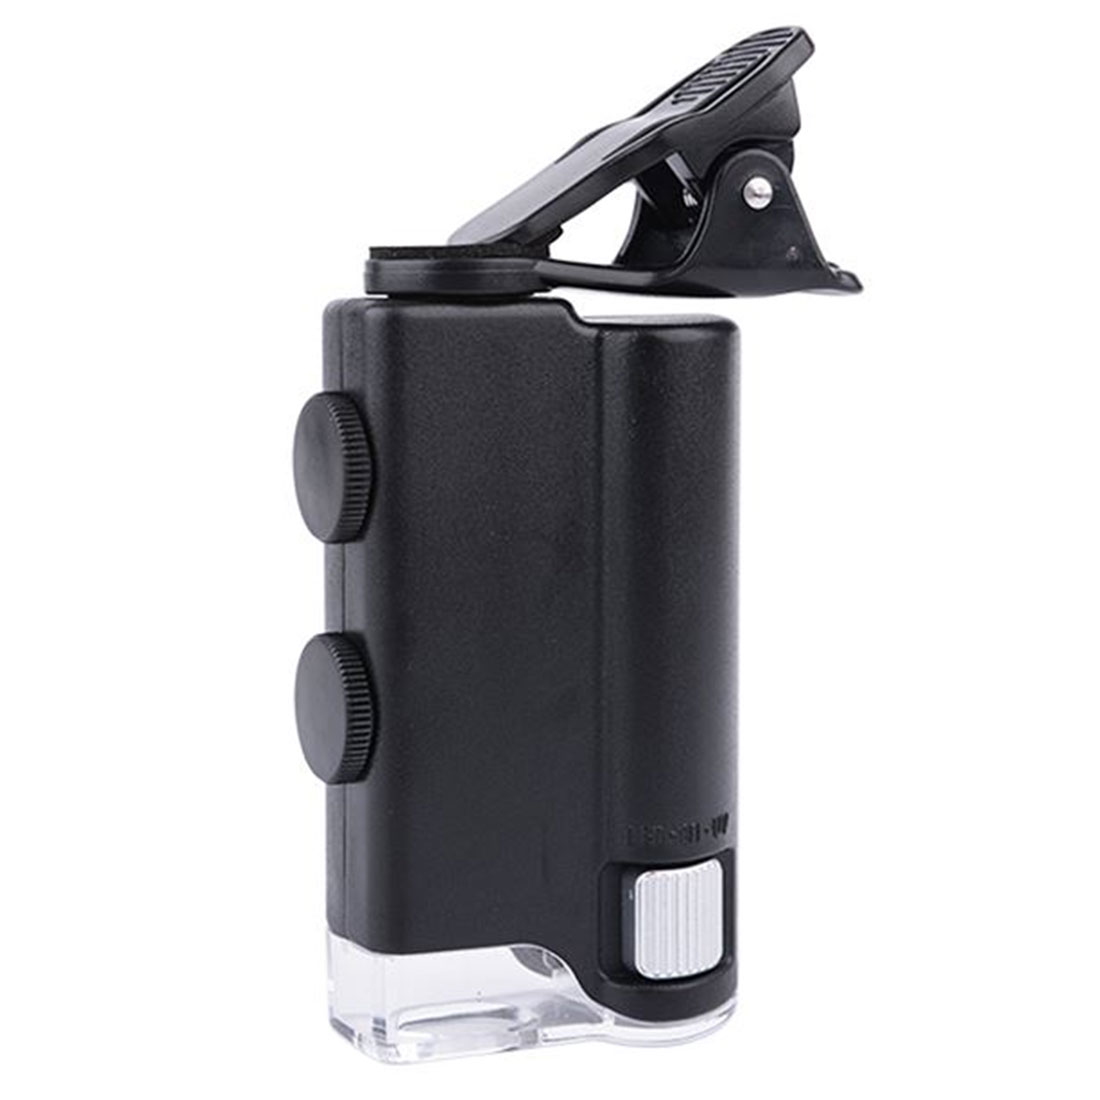 Portable 60x To 100x Zoom LED Microscope Pocket Magnifier Magnifying Loupe Glass